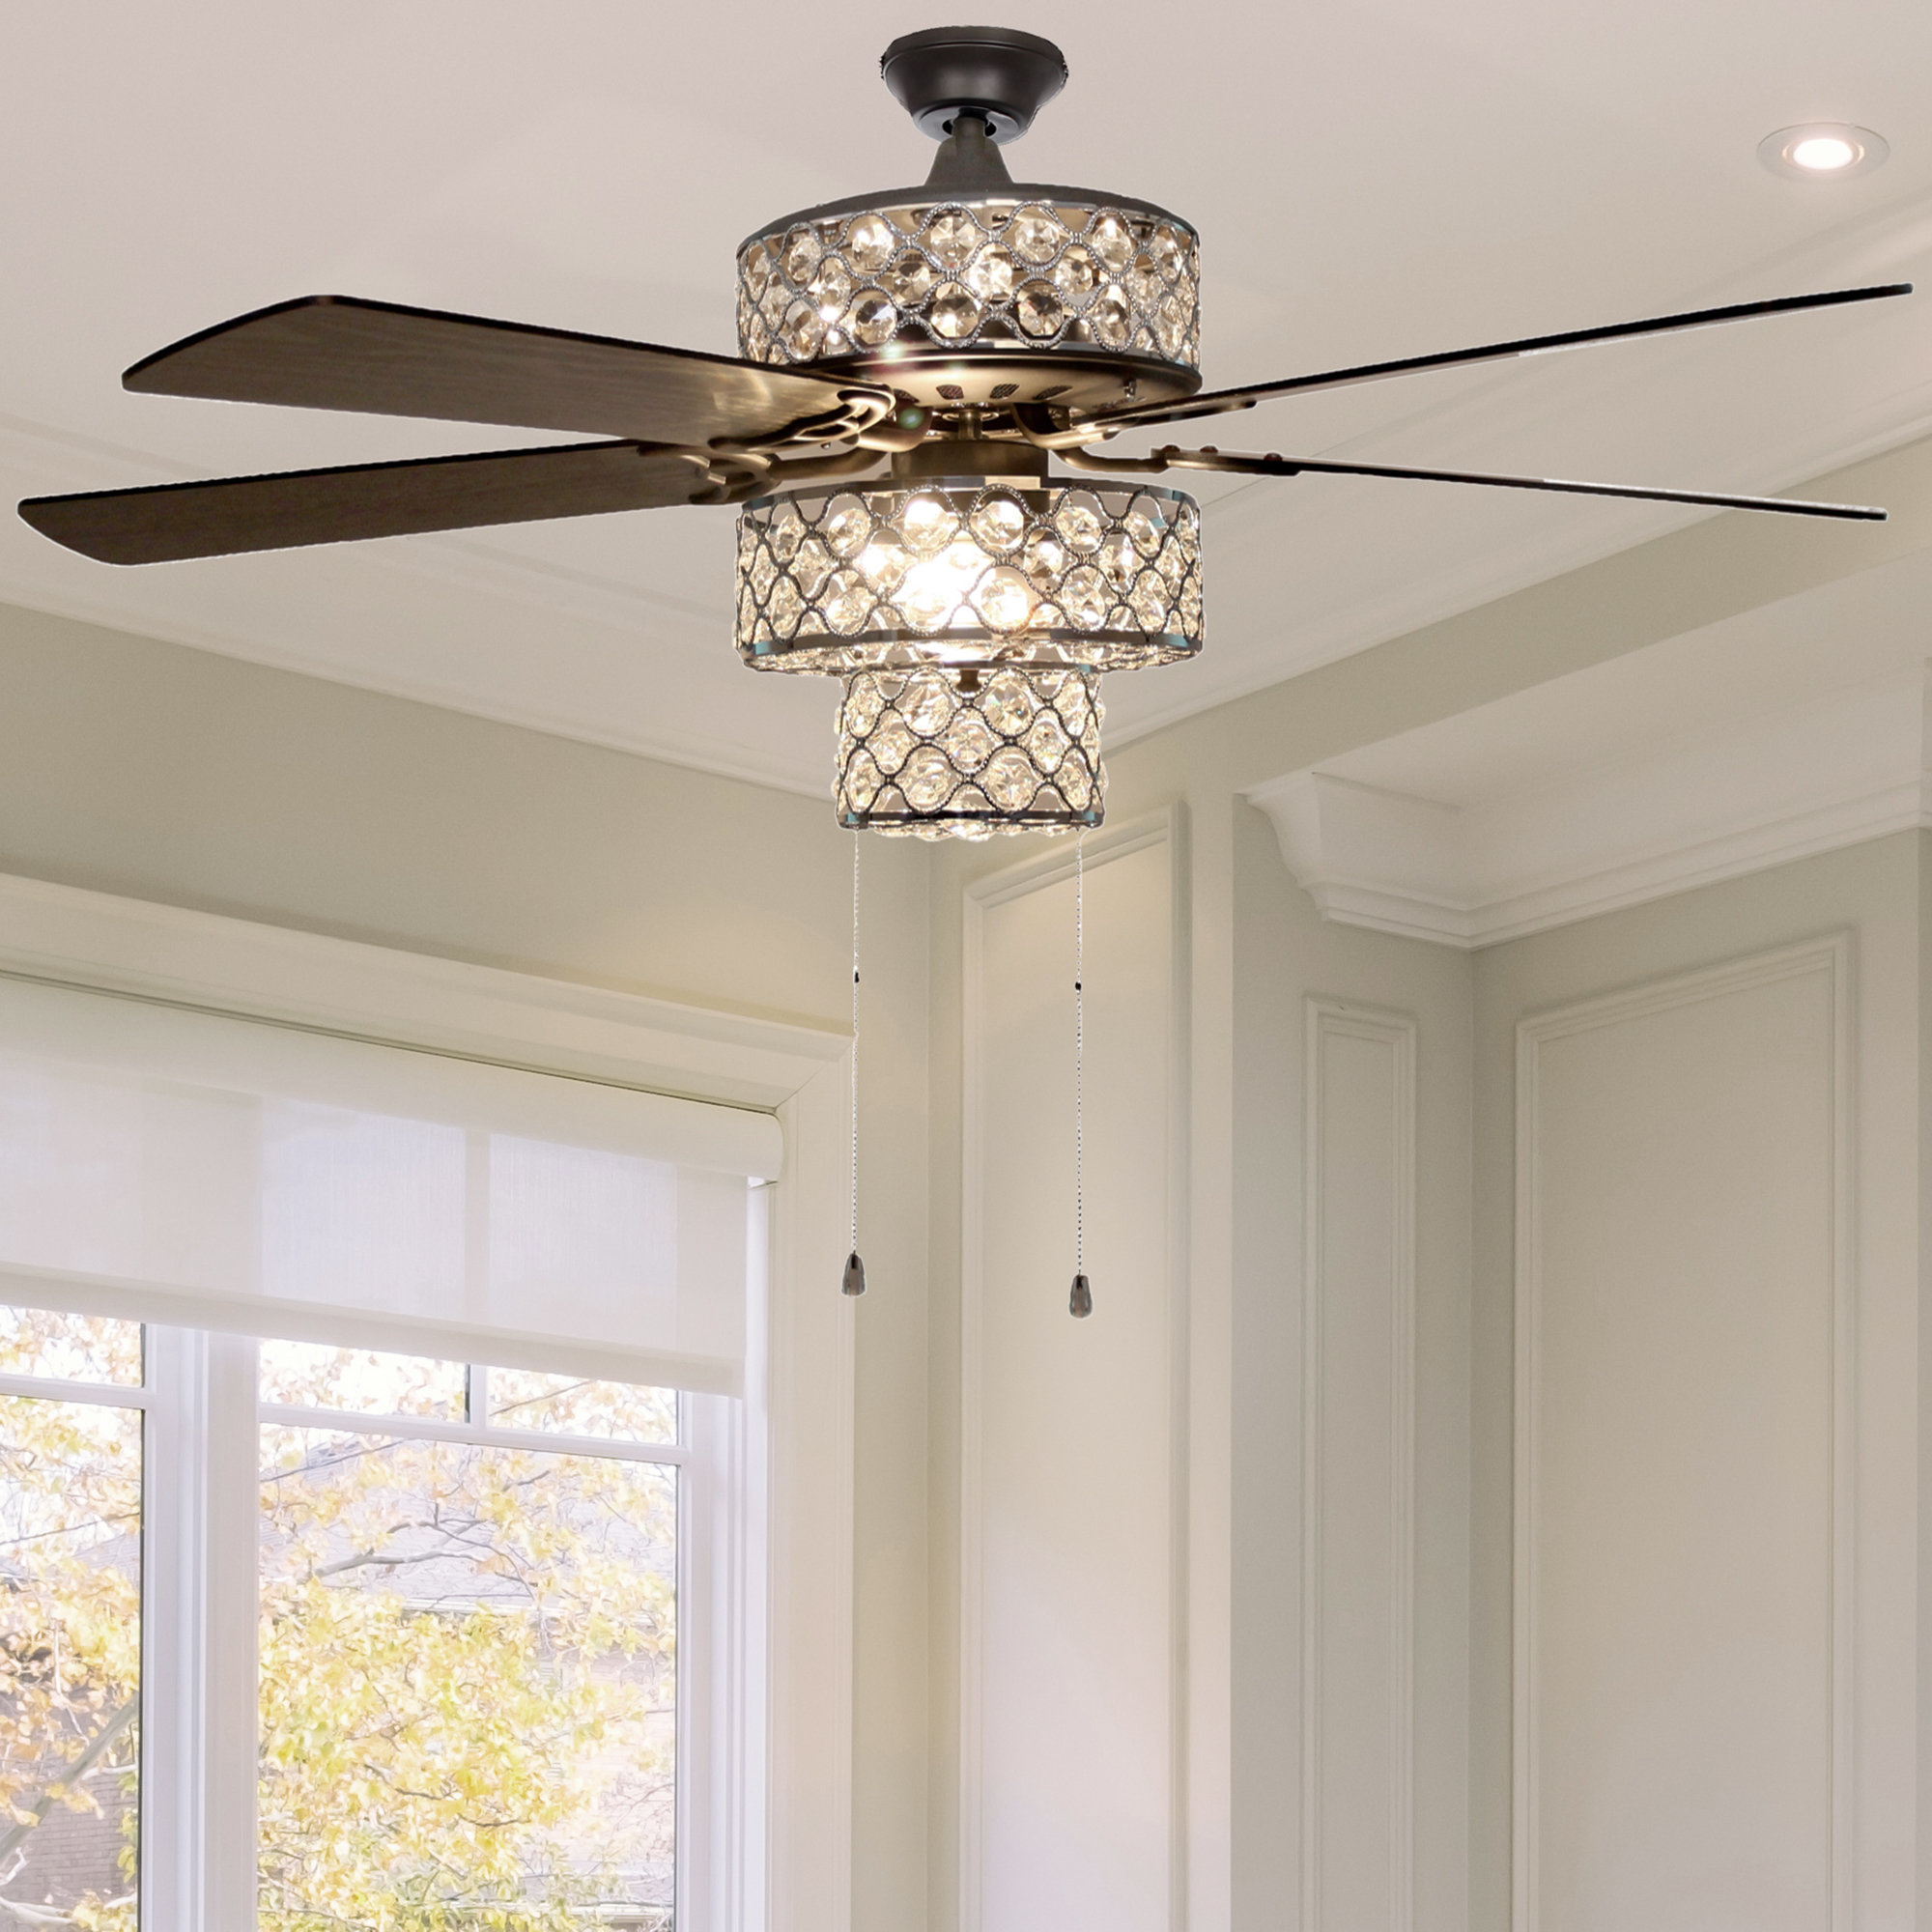 """Norah 5 Blade Ceiling Fans For 2020 52"""" Marleigh Tri Tiered 5 Blade Ceiling Fan With Remote, Light Kit Included (View 9 of 20)"""